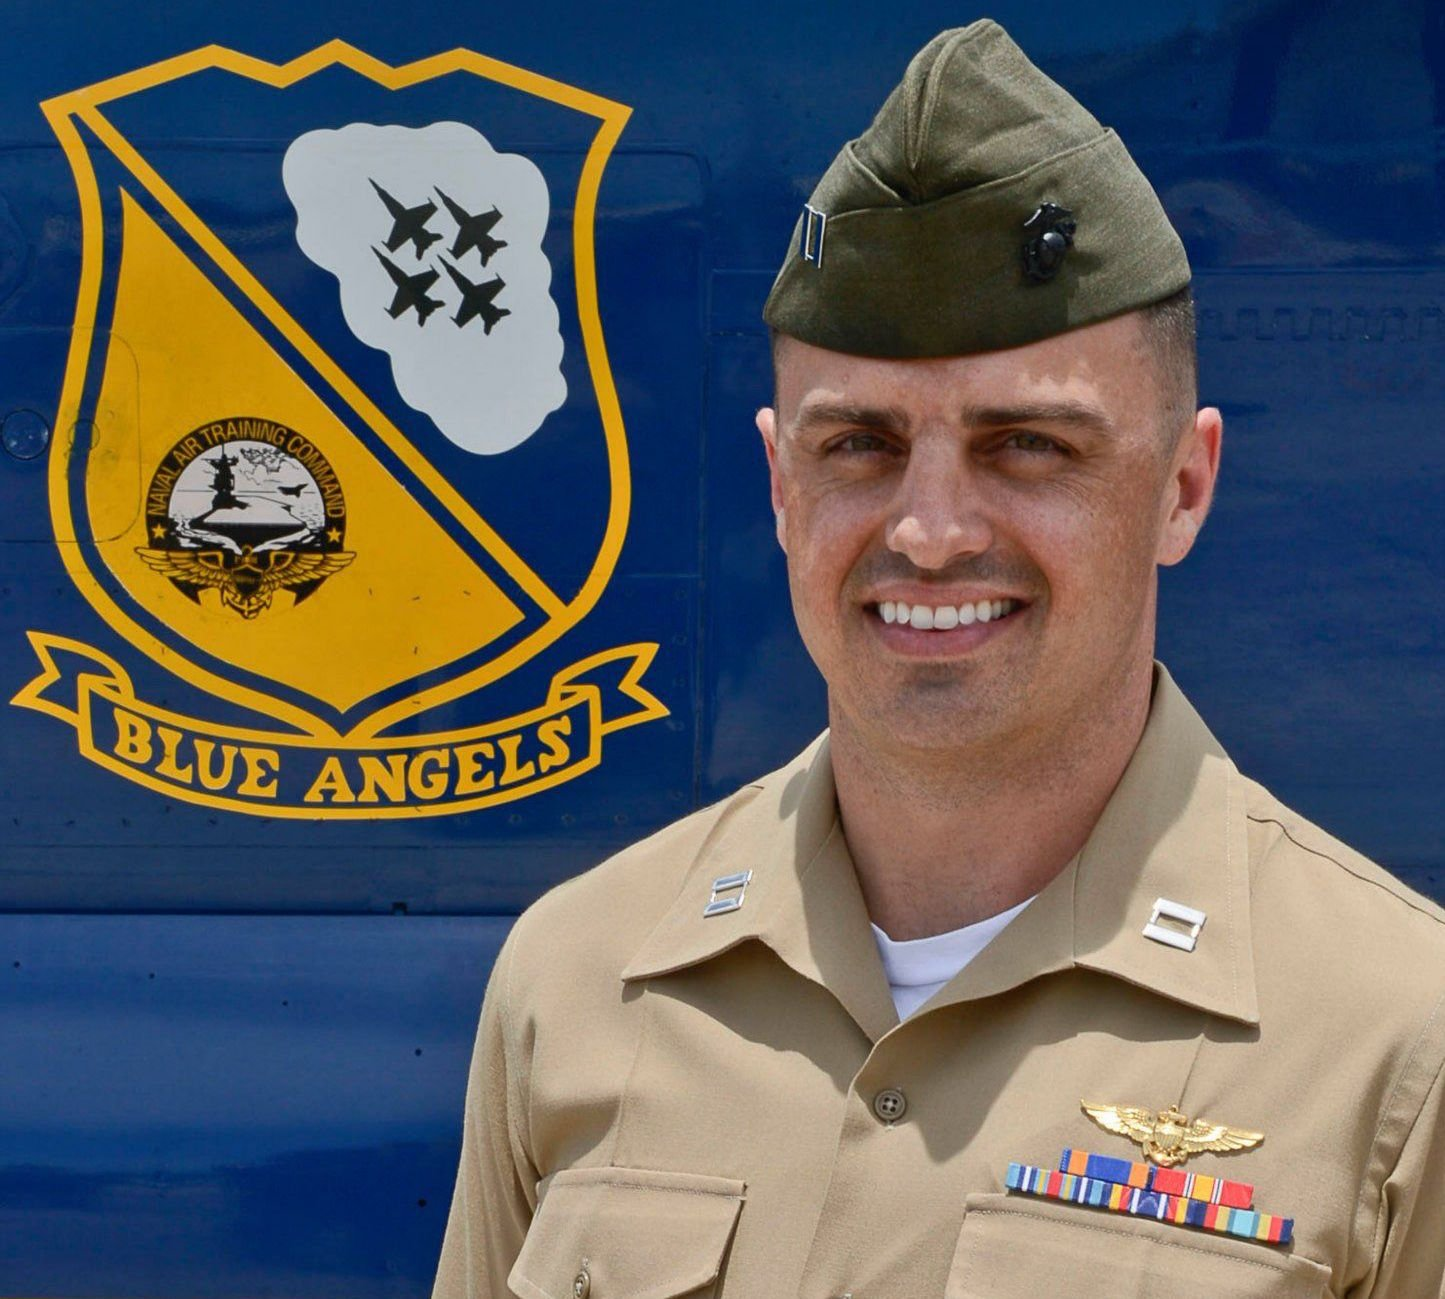 Marine Capt. Jeff Kuss in 2014. Blues Angels Photo